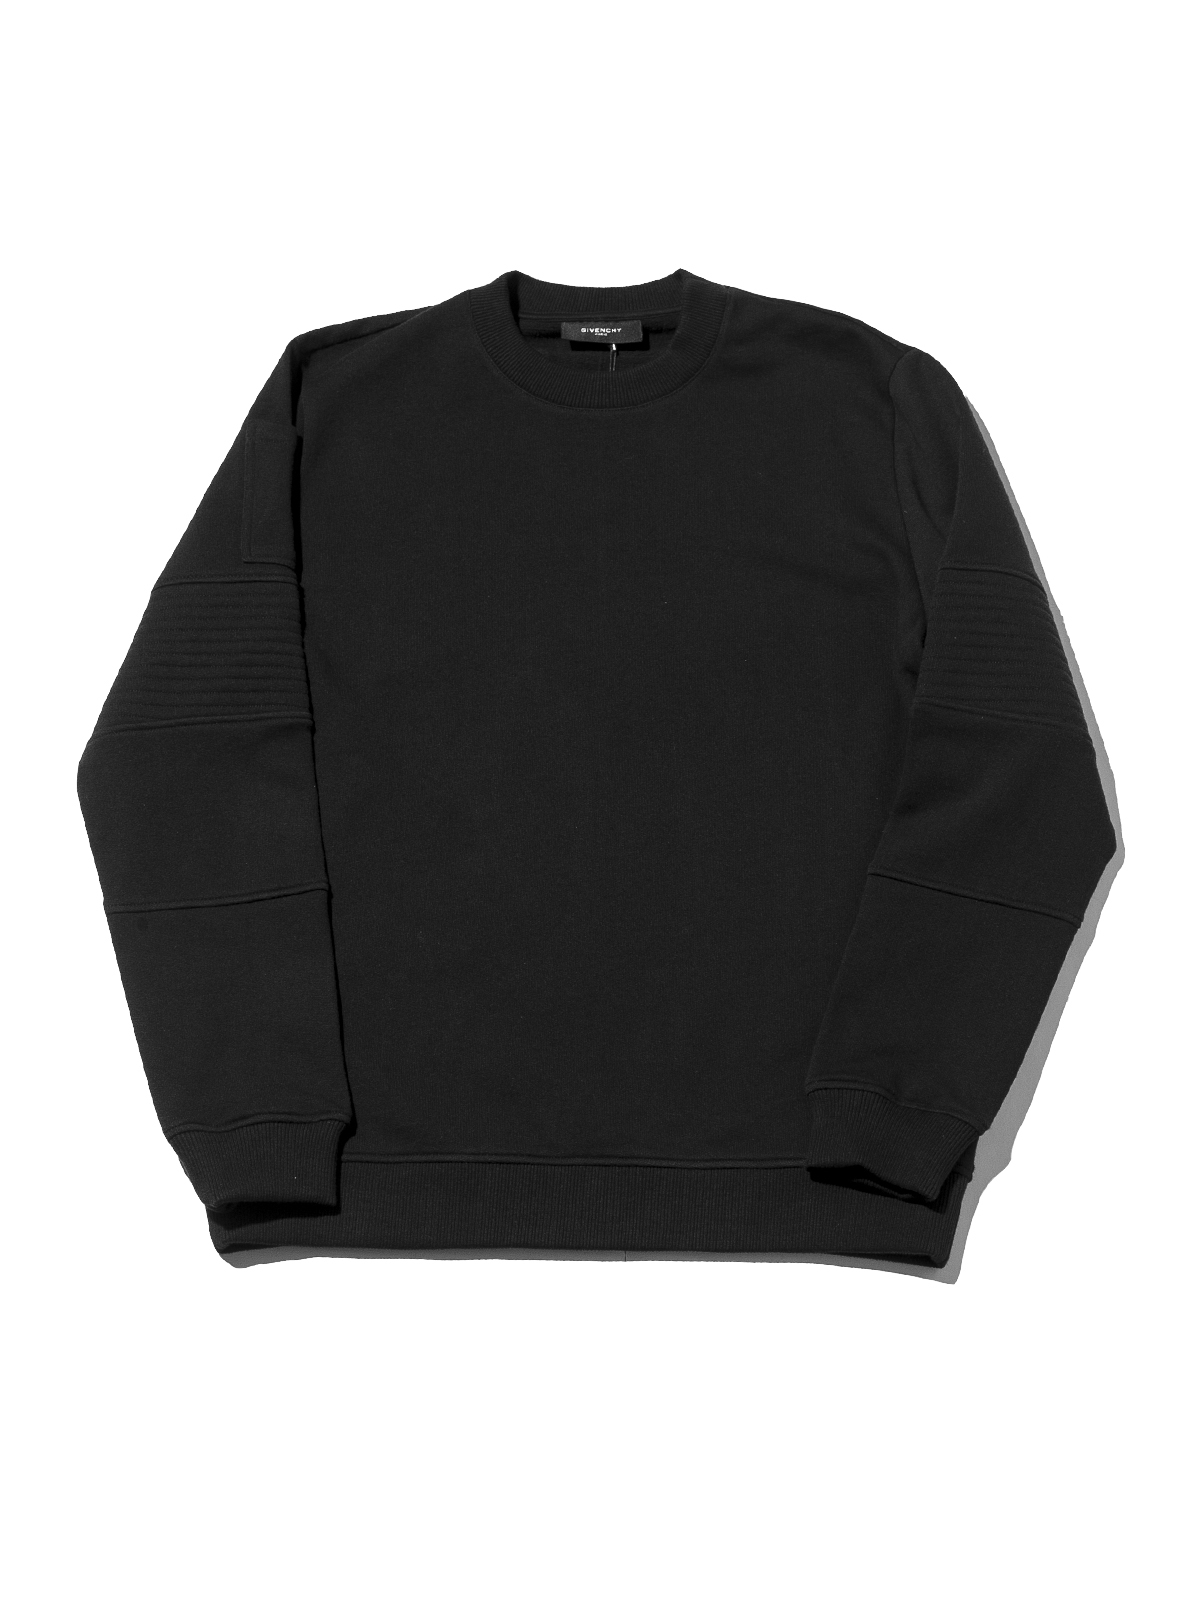 GIVENCHY CUBAN SWEATER WITH RIBBED POCKET, (BLACK) RSVP